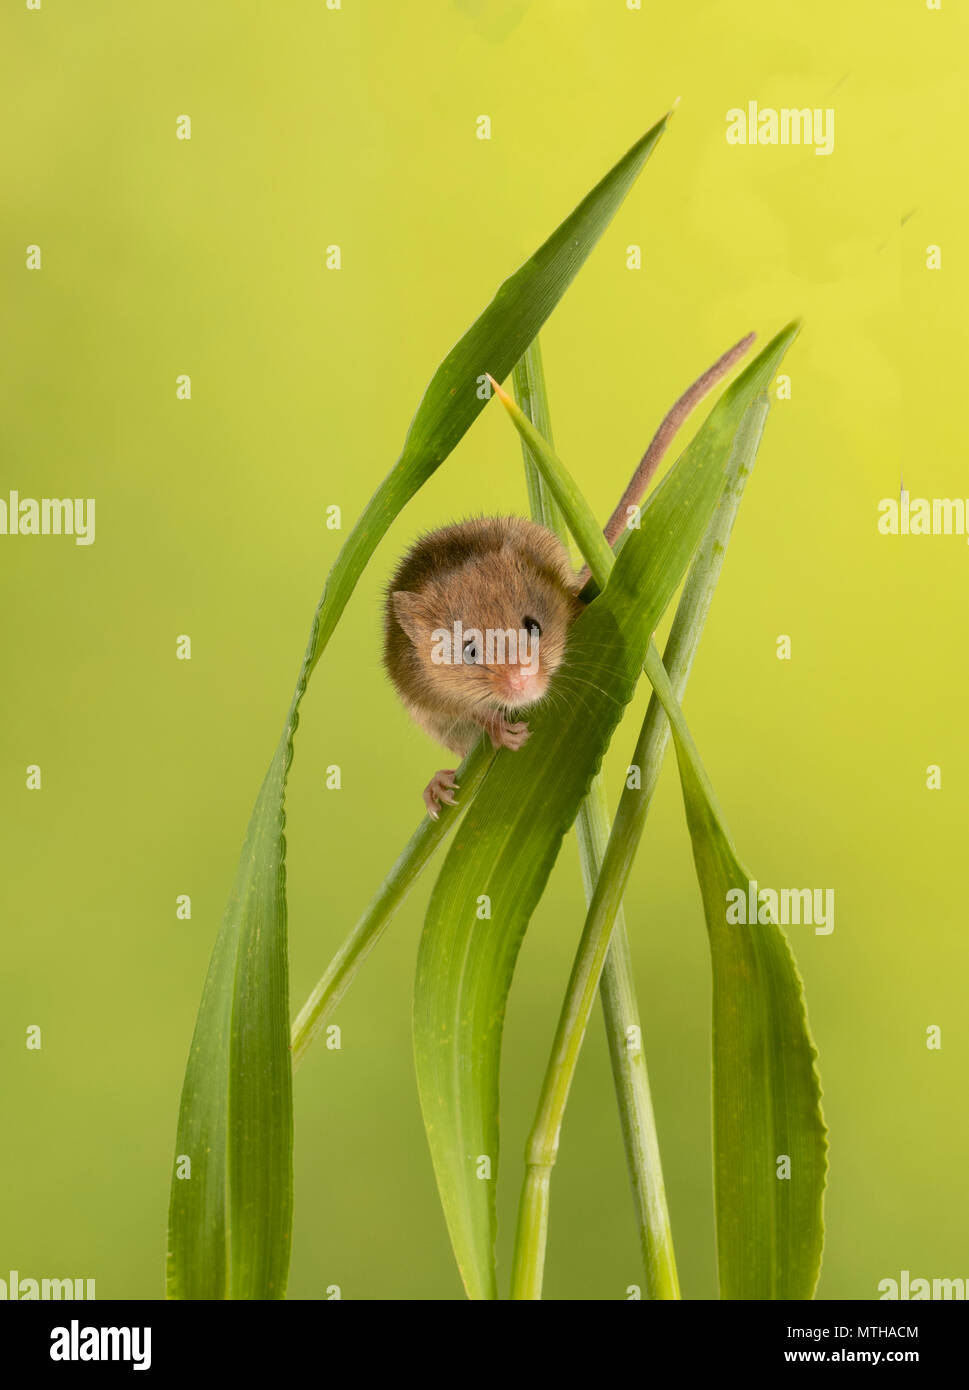 Harvest mouse climbing on grass blades - Stock Image